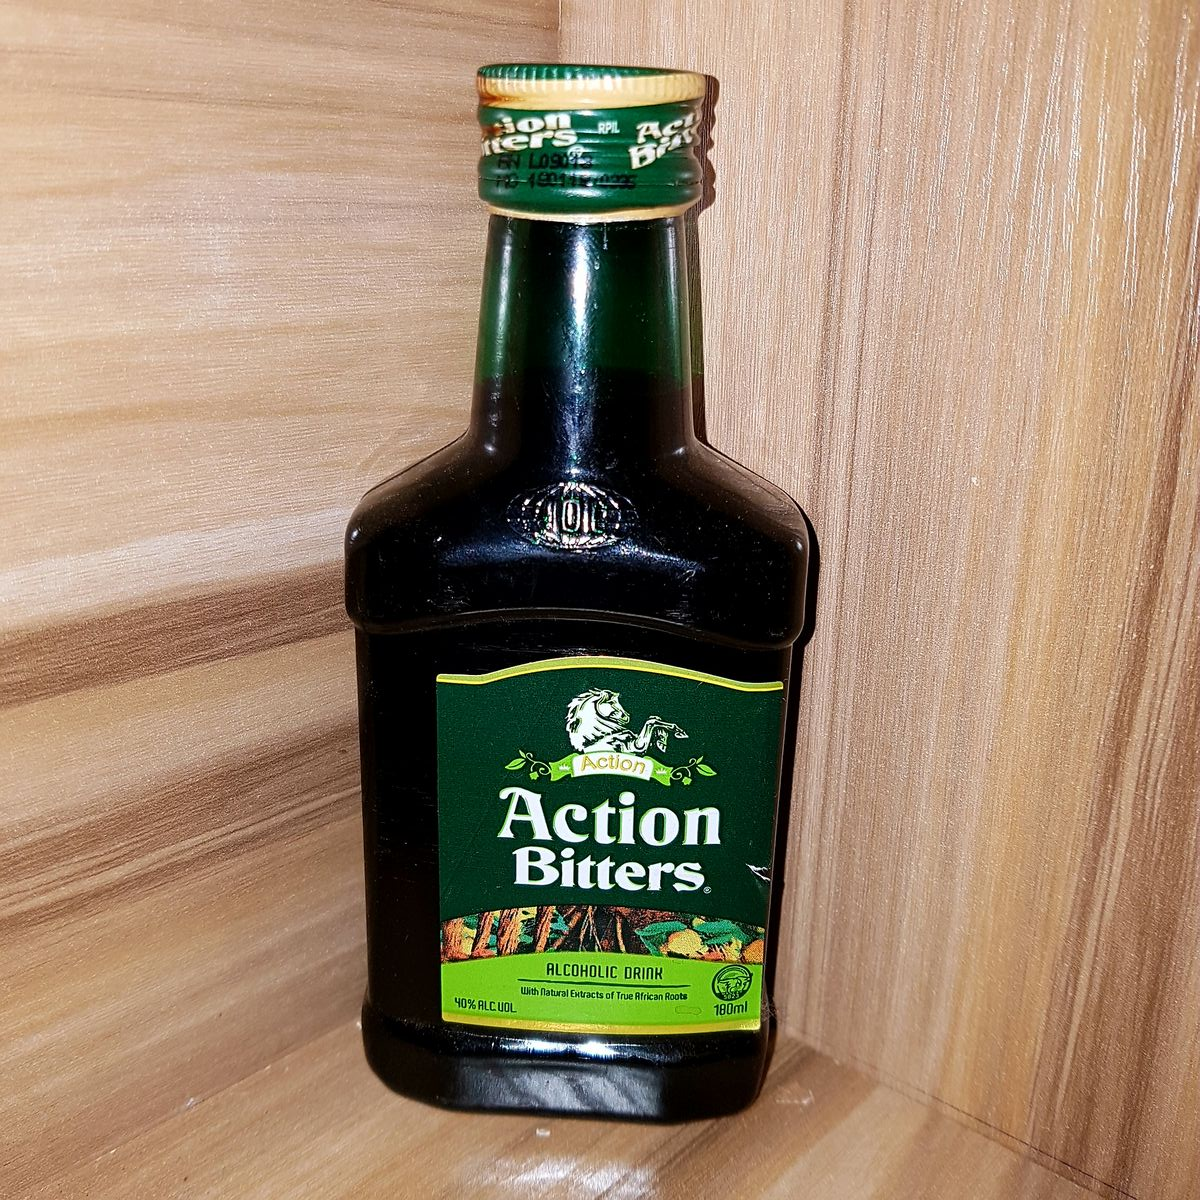 What Does Action Bitters Do In The Body